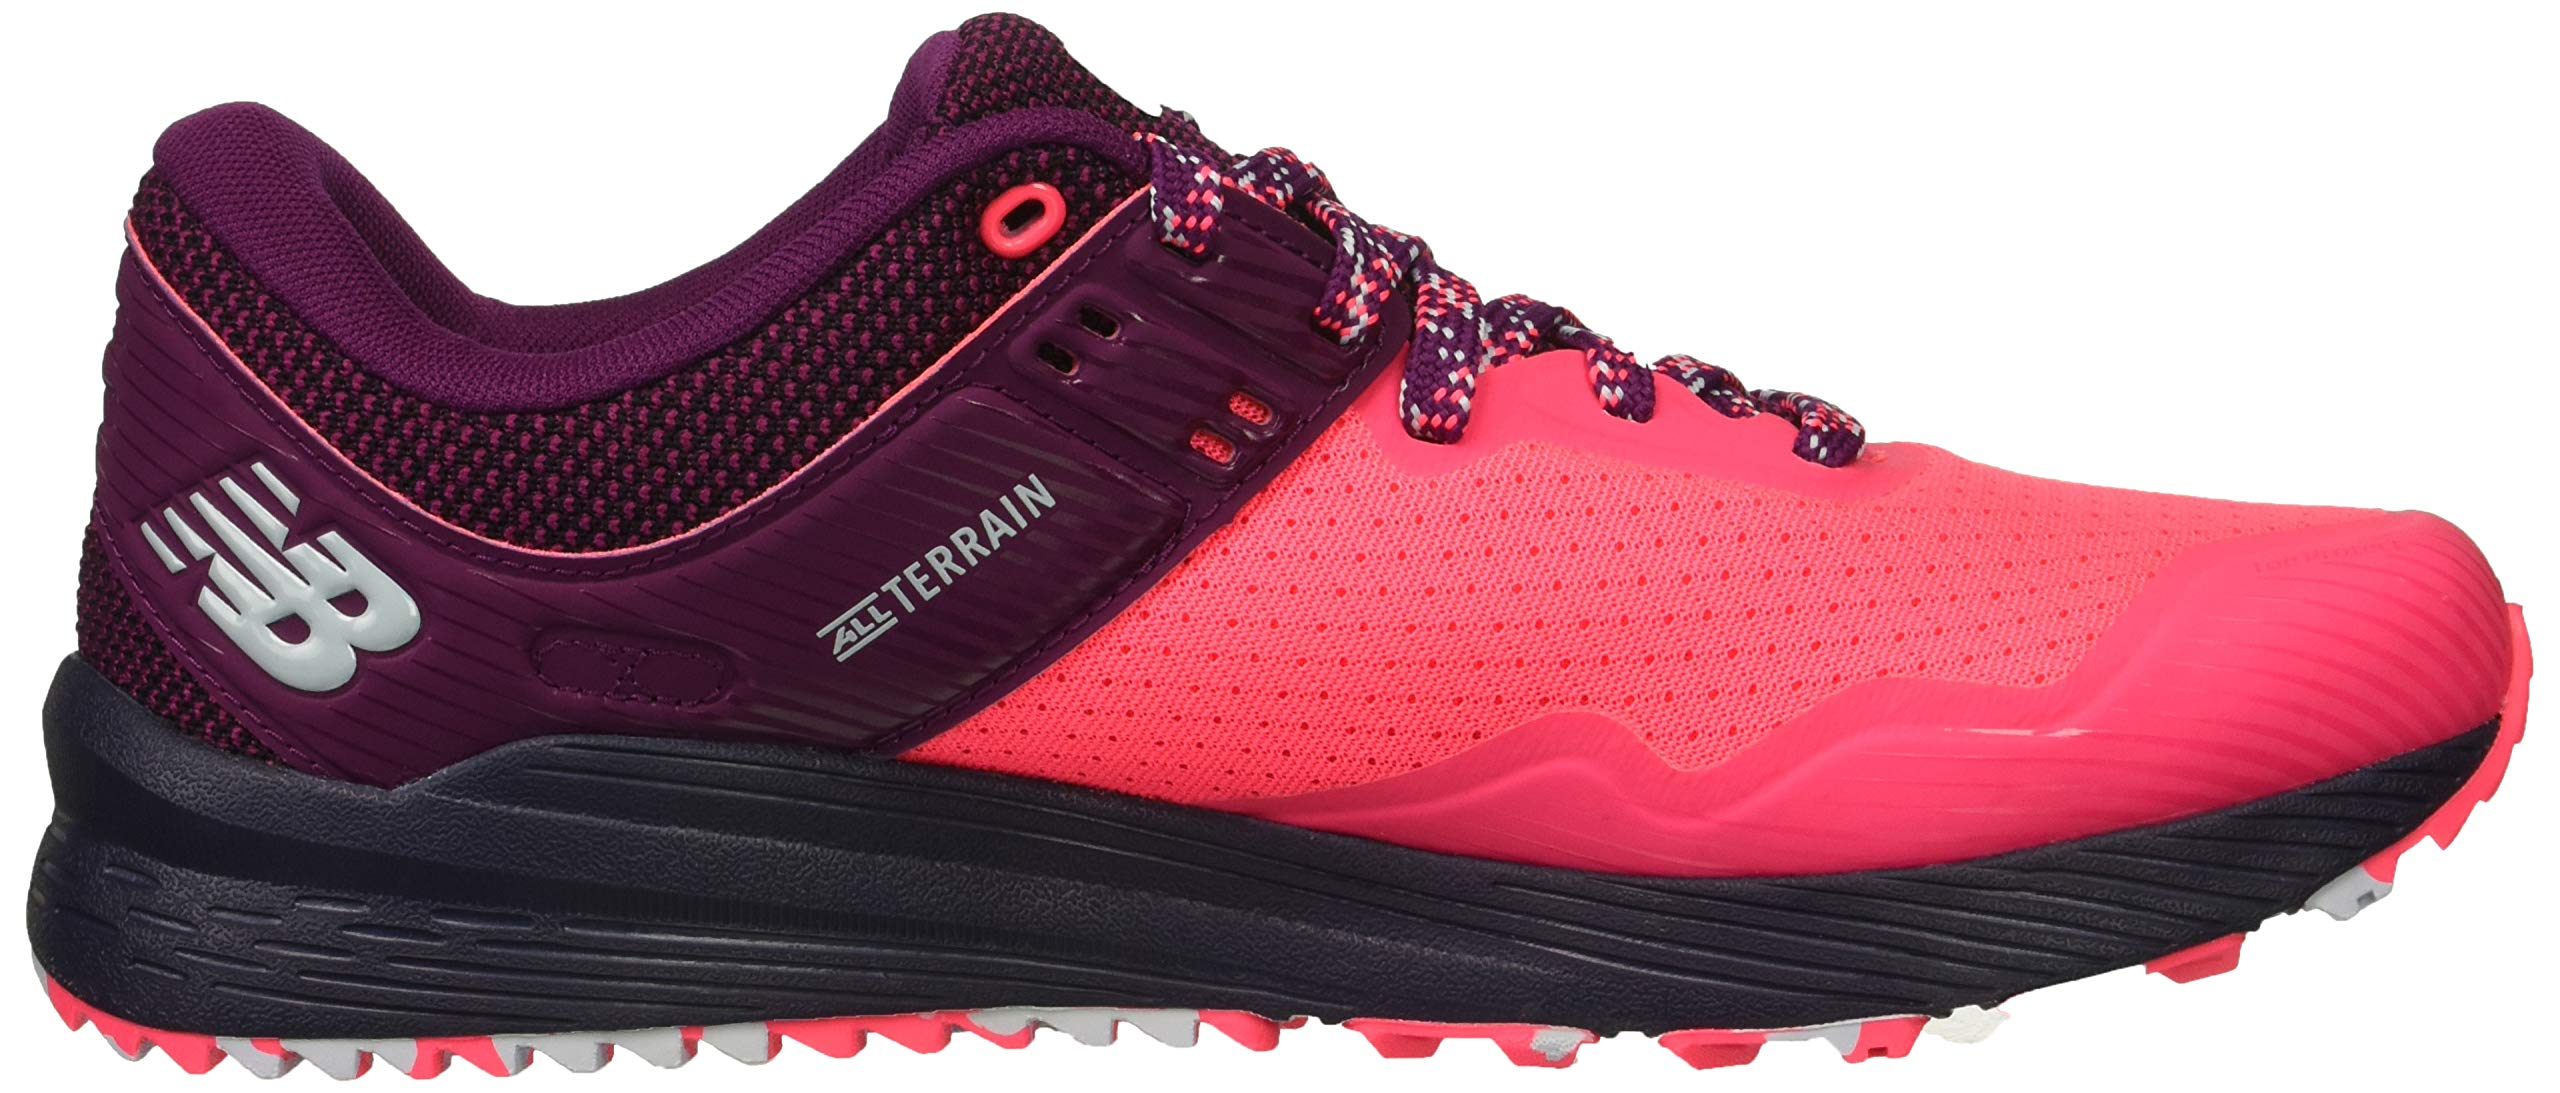 New Balance Women's Nitrel V2 FuelCore Trail Running Shoe Pink zing/Claret/Pigment 5 B US by New Balance (Image #7)